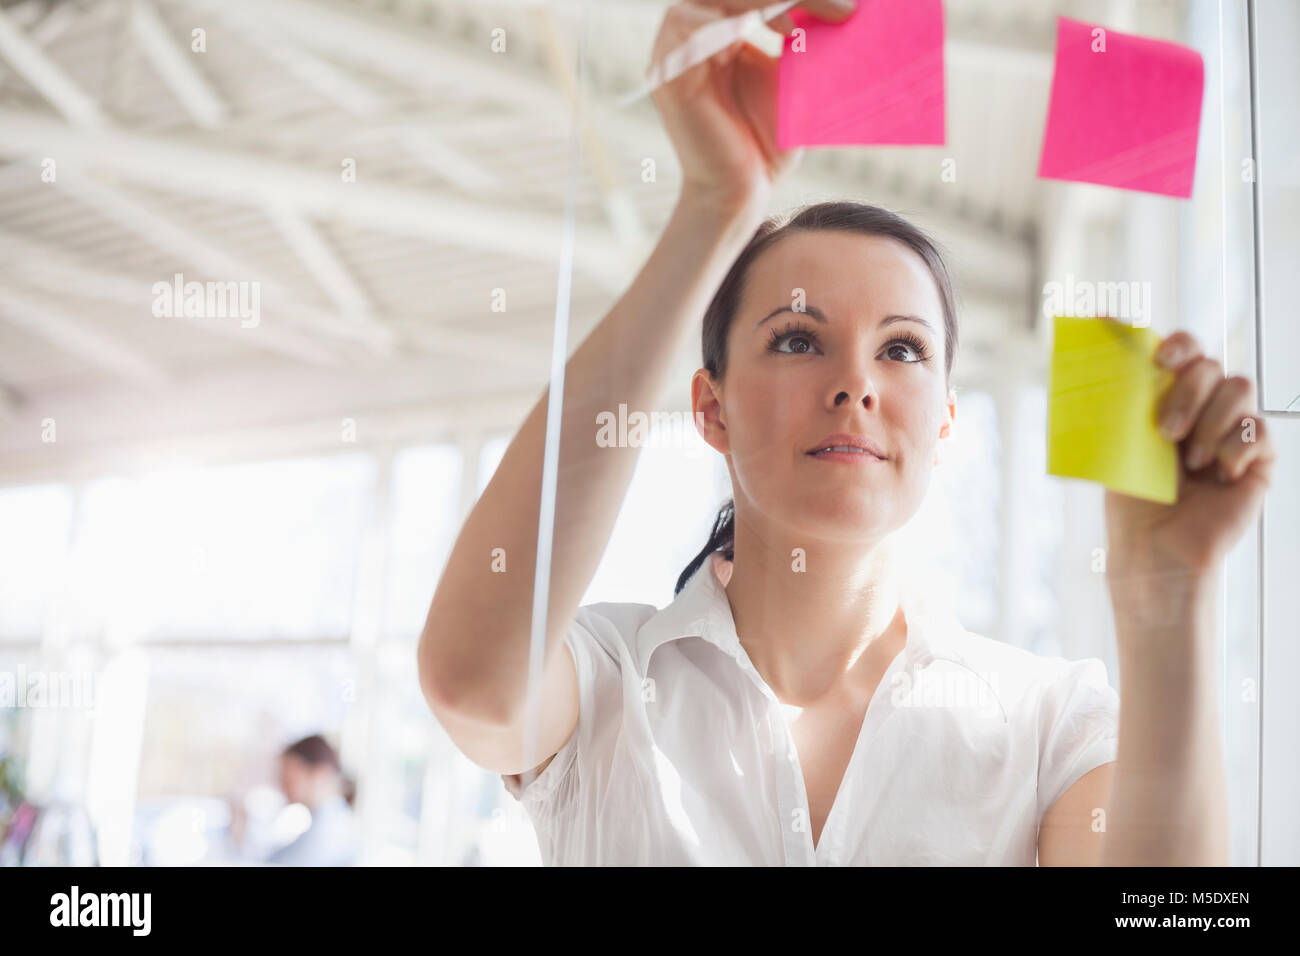 Beautiful young businesswoman putting adhesive notes on glass wall in office - Stock Image